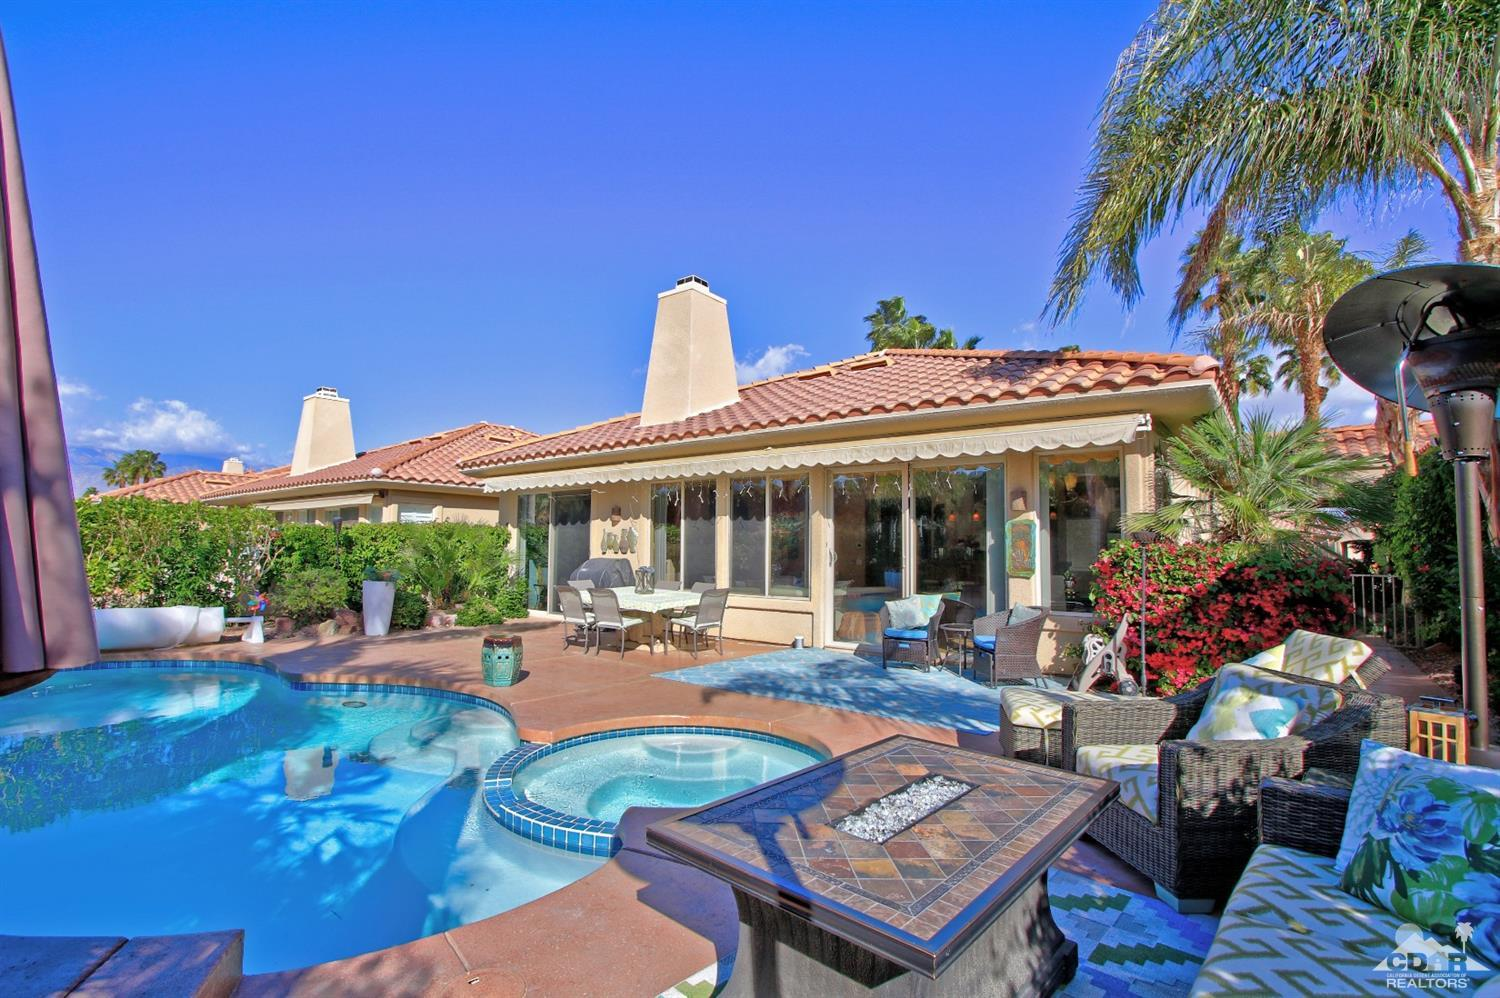 213 Kavenish Drive, Rancho Mirage, CA 92270